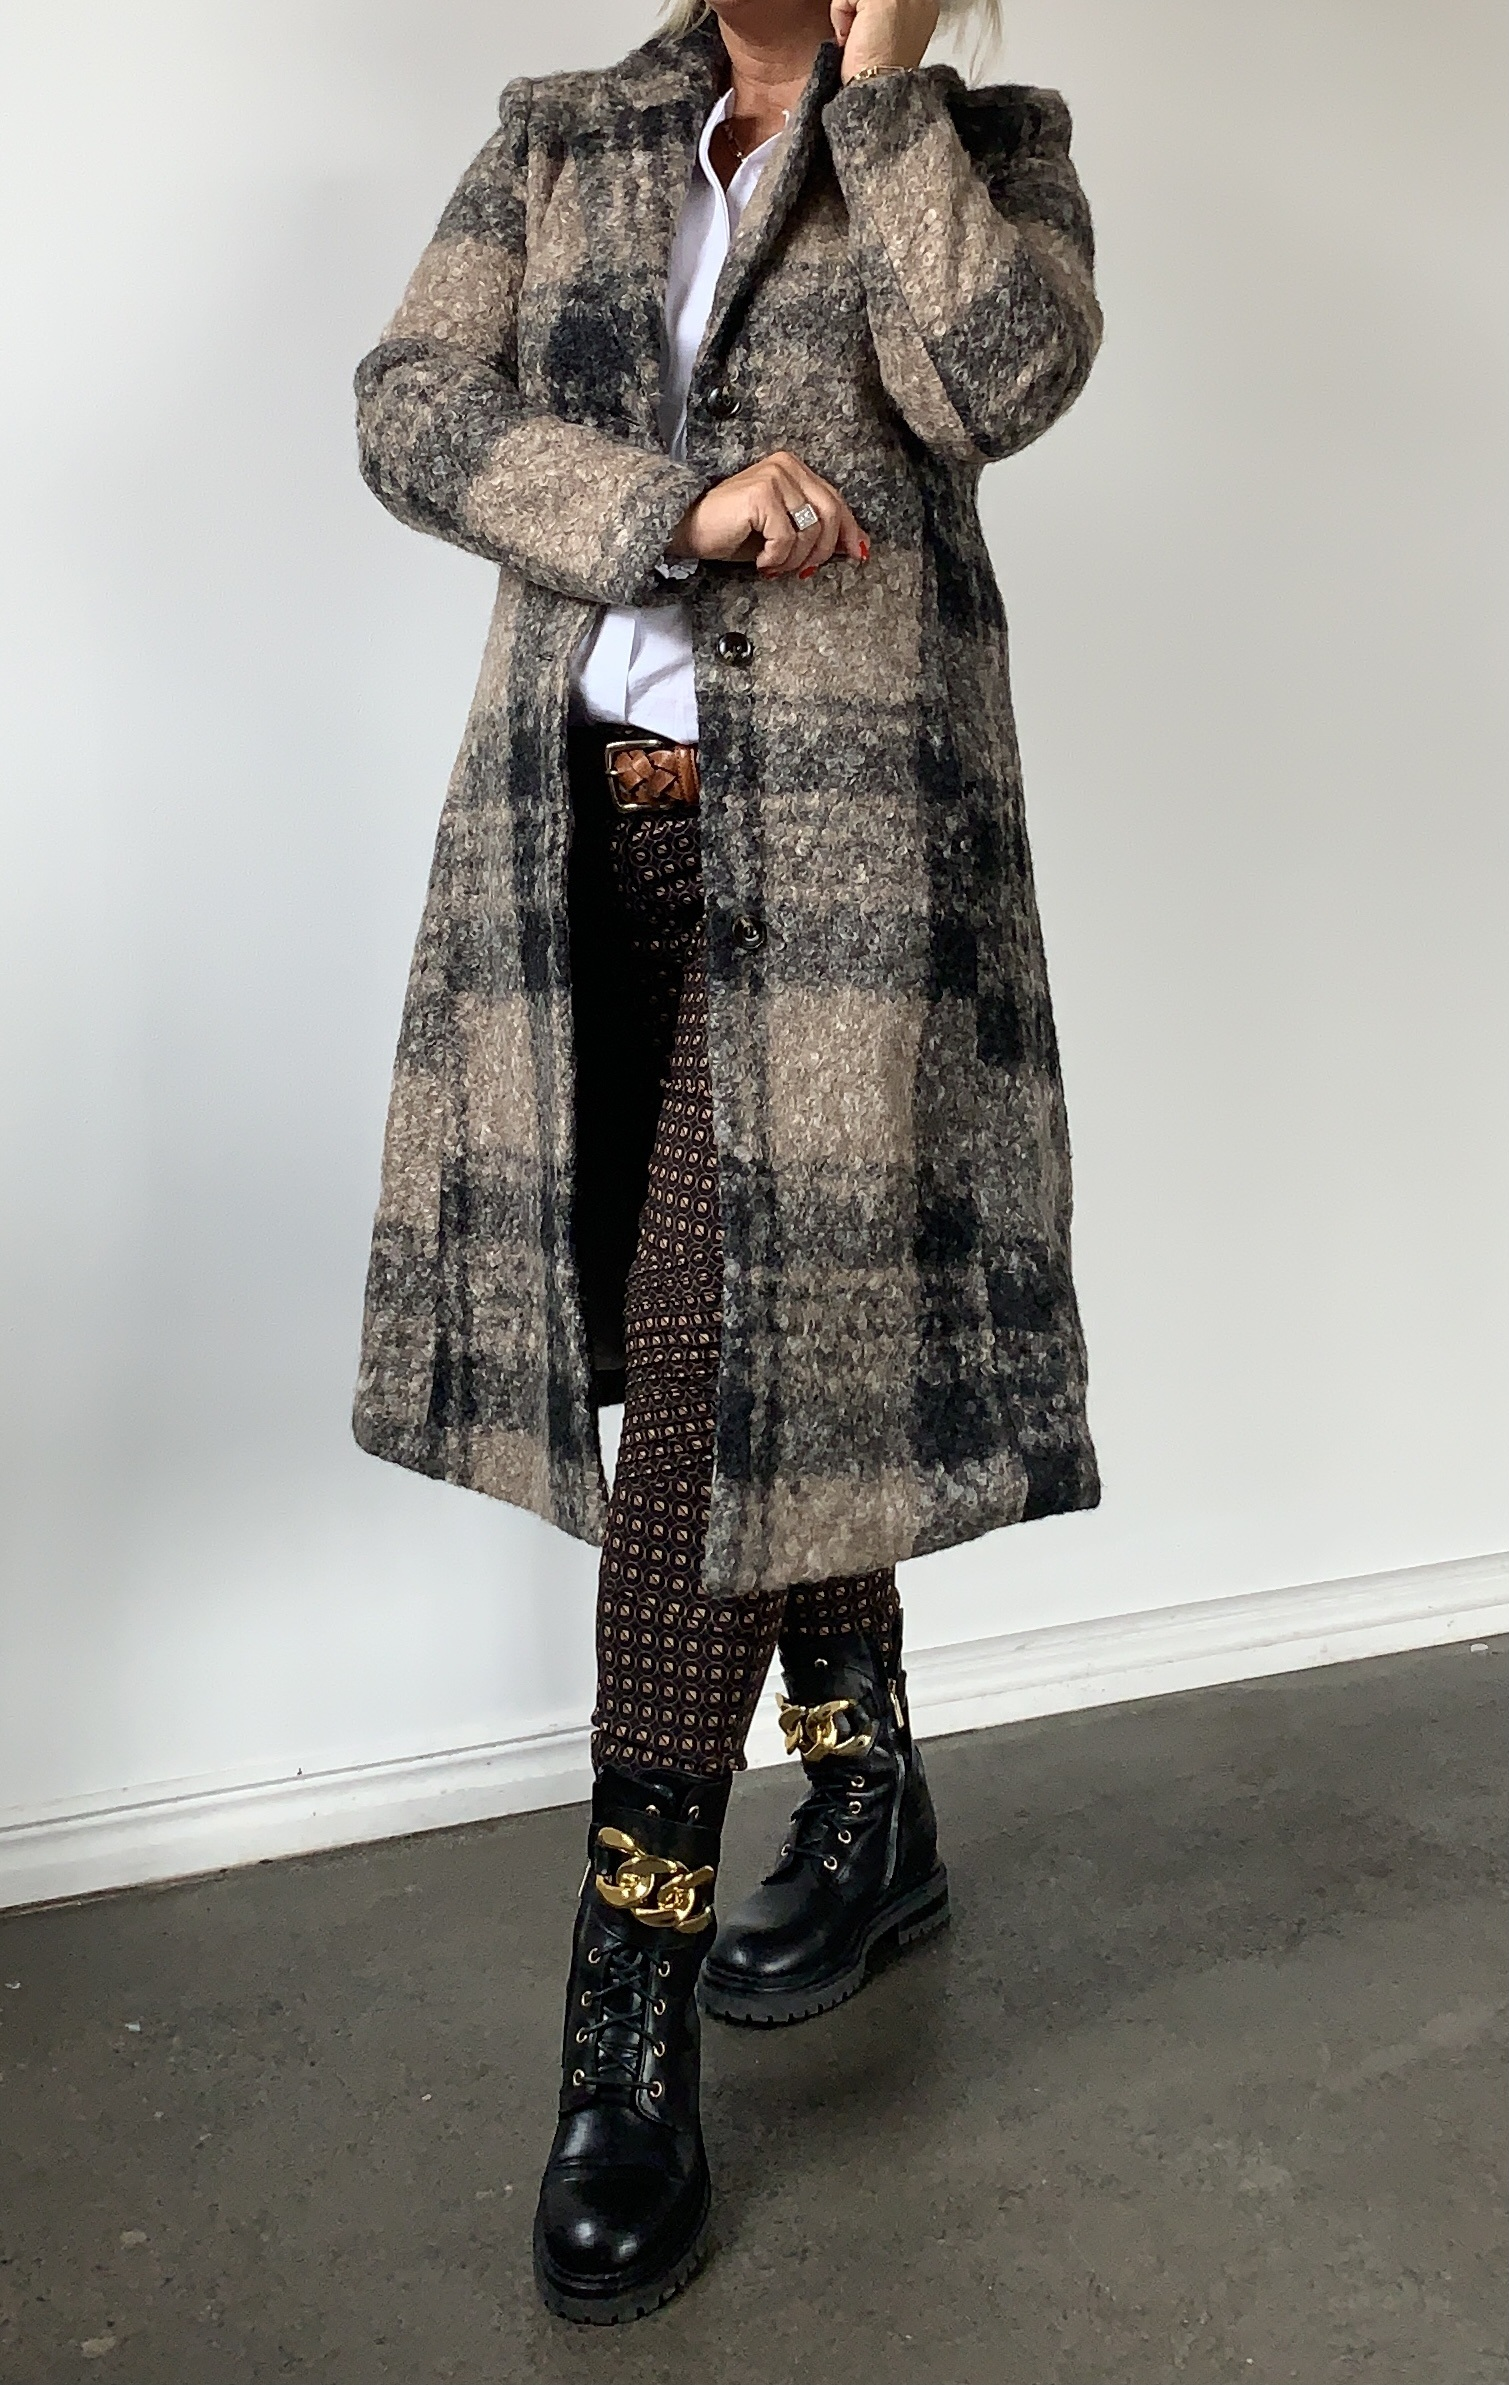 COSTA MANI Beth coat IMAGE BY ME